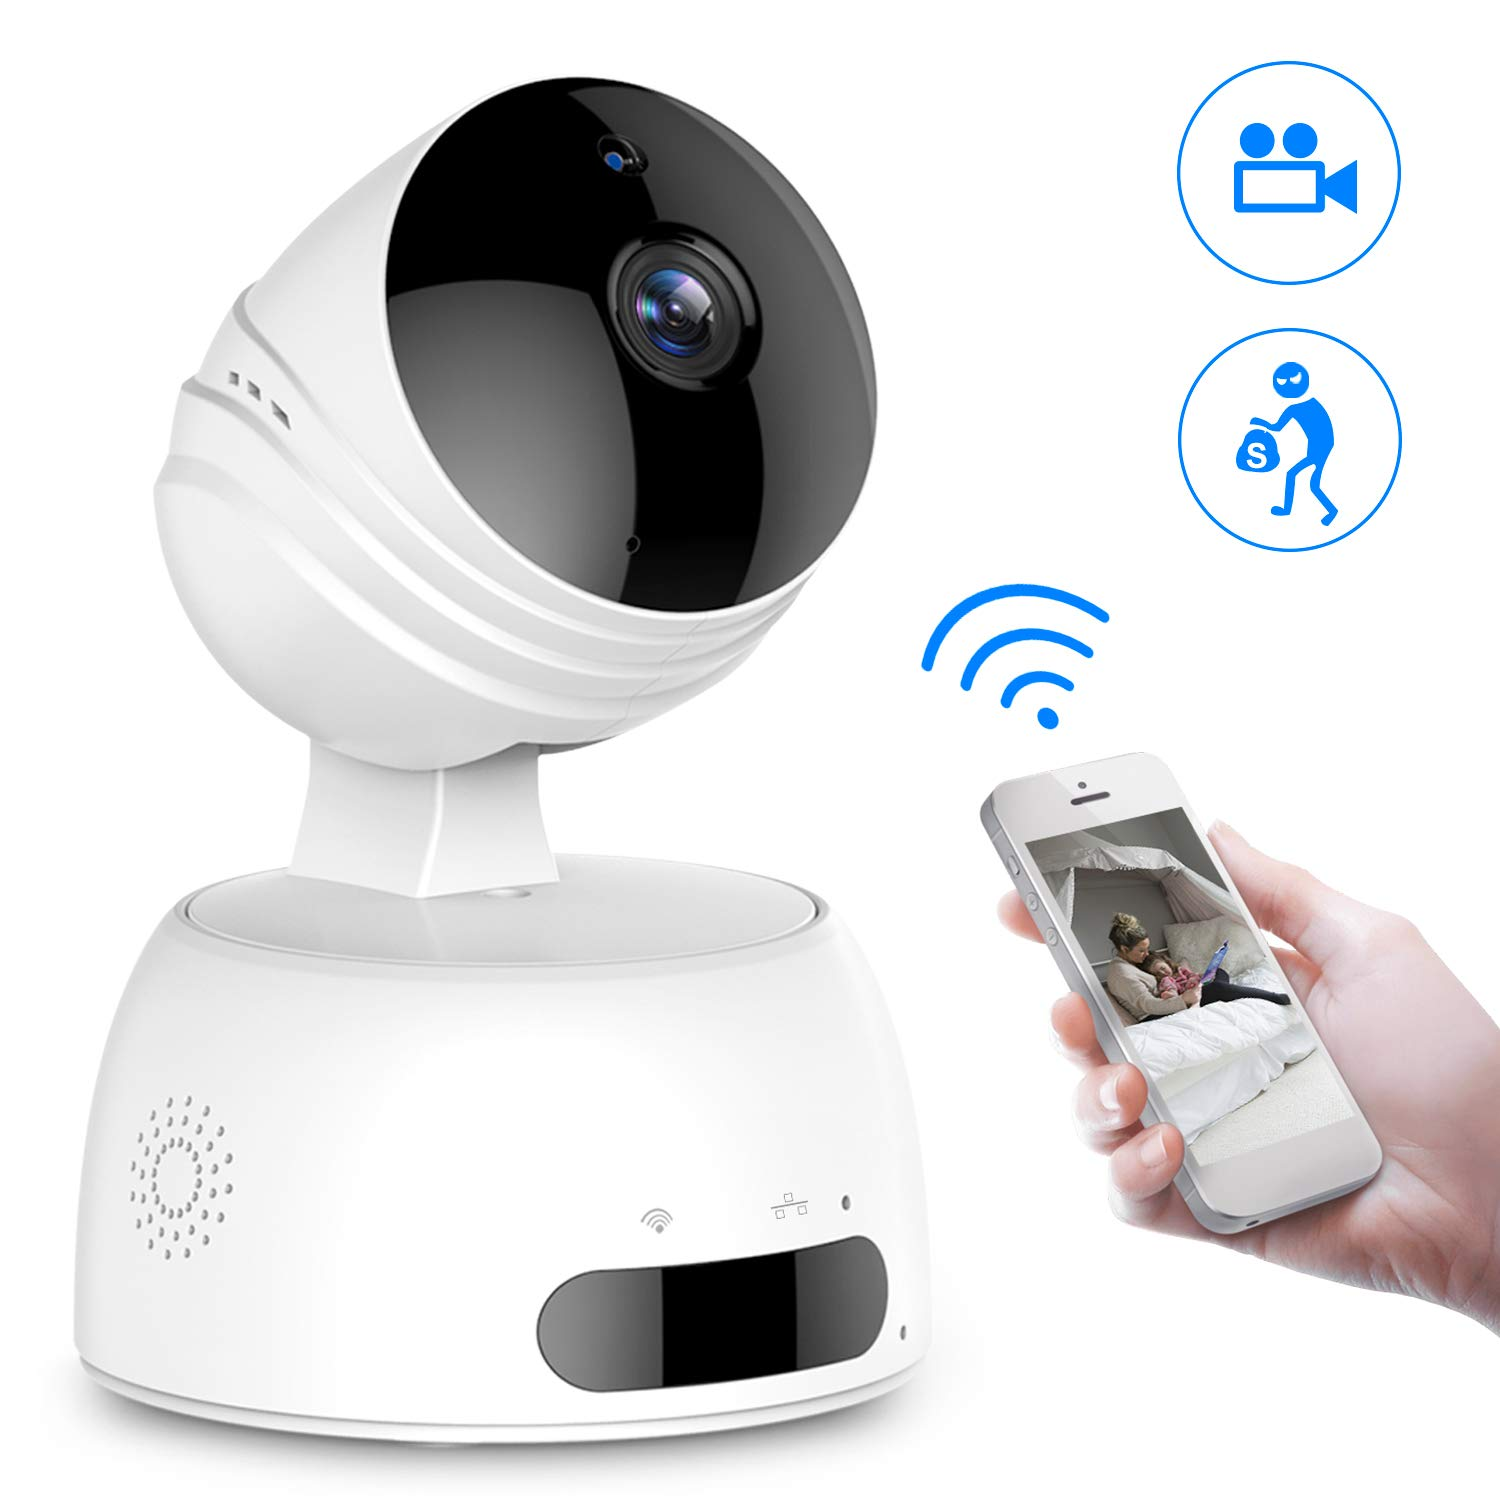 Caméra Surveillance WiFi, ROXTAK Caméra IP sans Fil, Caméra de Sécurité avec Cloud, Vision Nocturne, Détection de Mouvement, Audio Bidirectionnel, Pan / Tilt / Zoom pour Bébé /Aîné /Animal, 720P product image